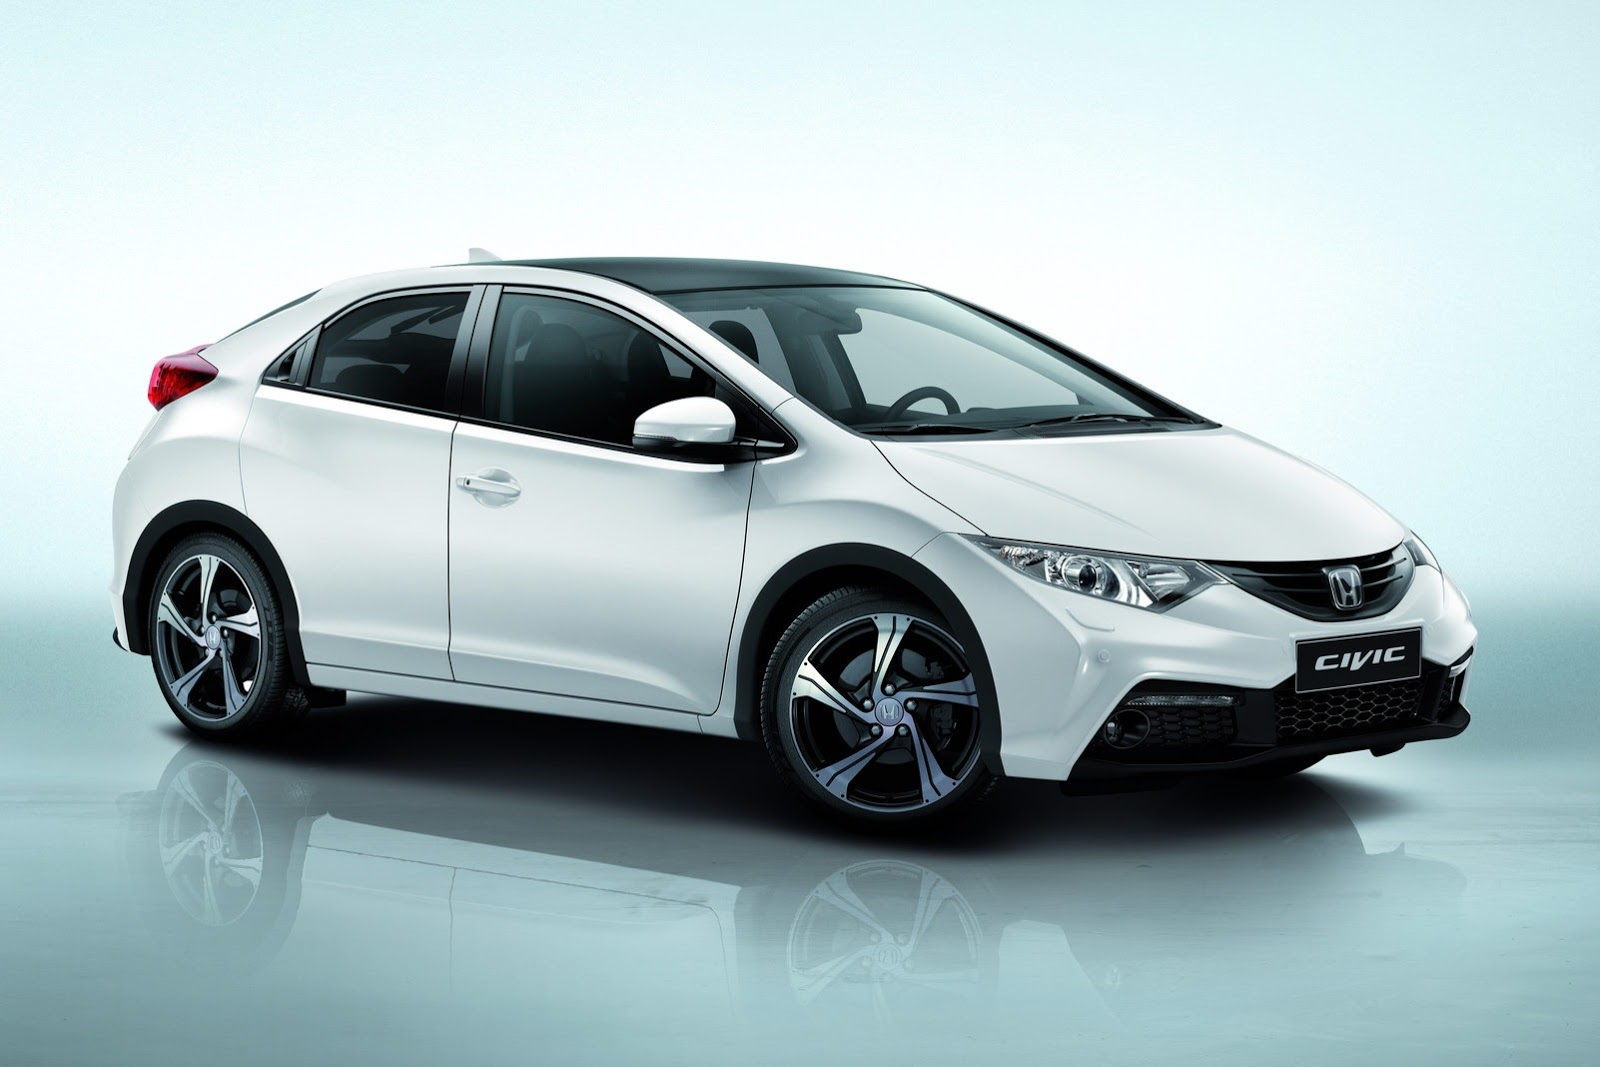 Honda Civic 2014 photo - 3